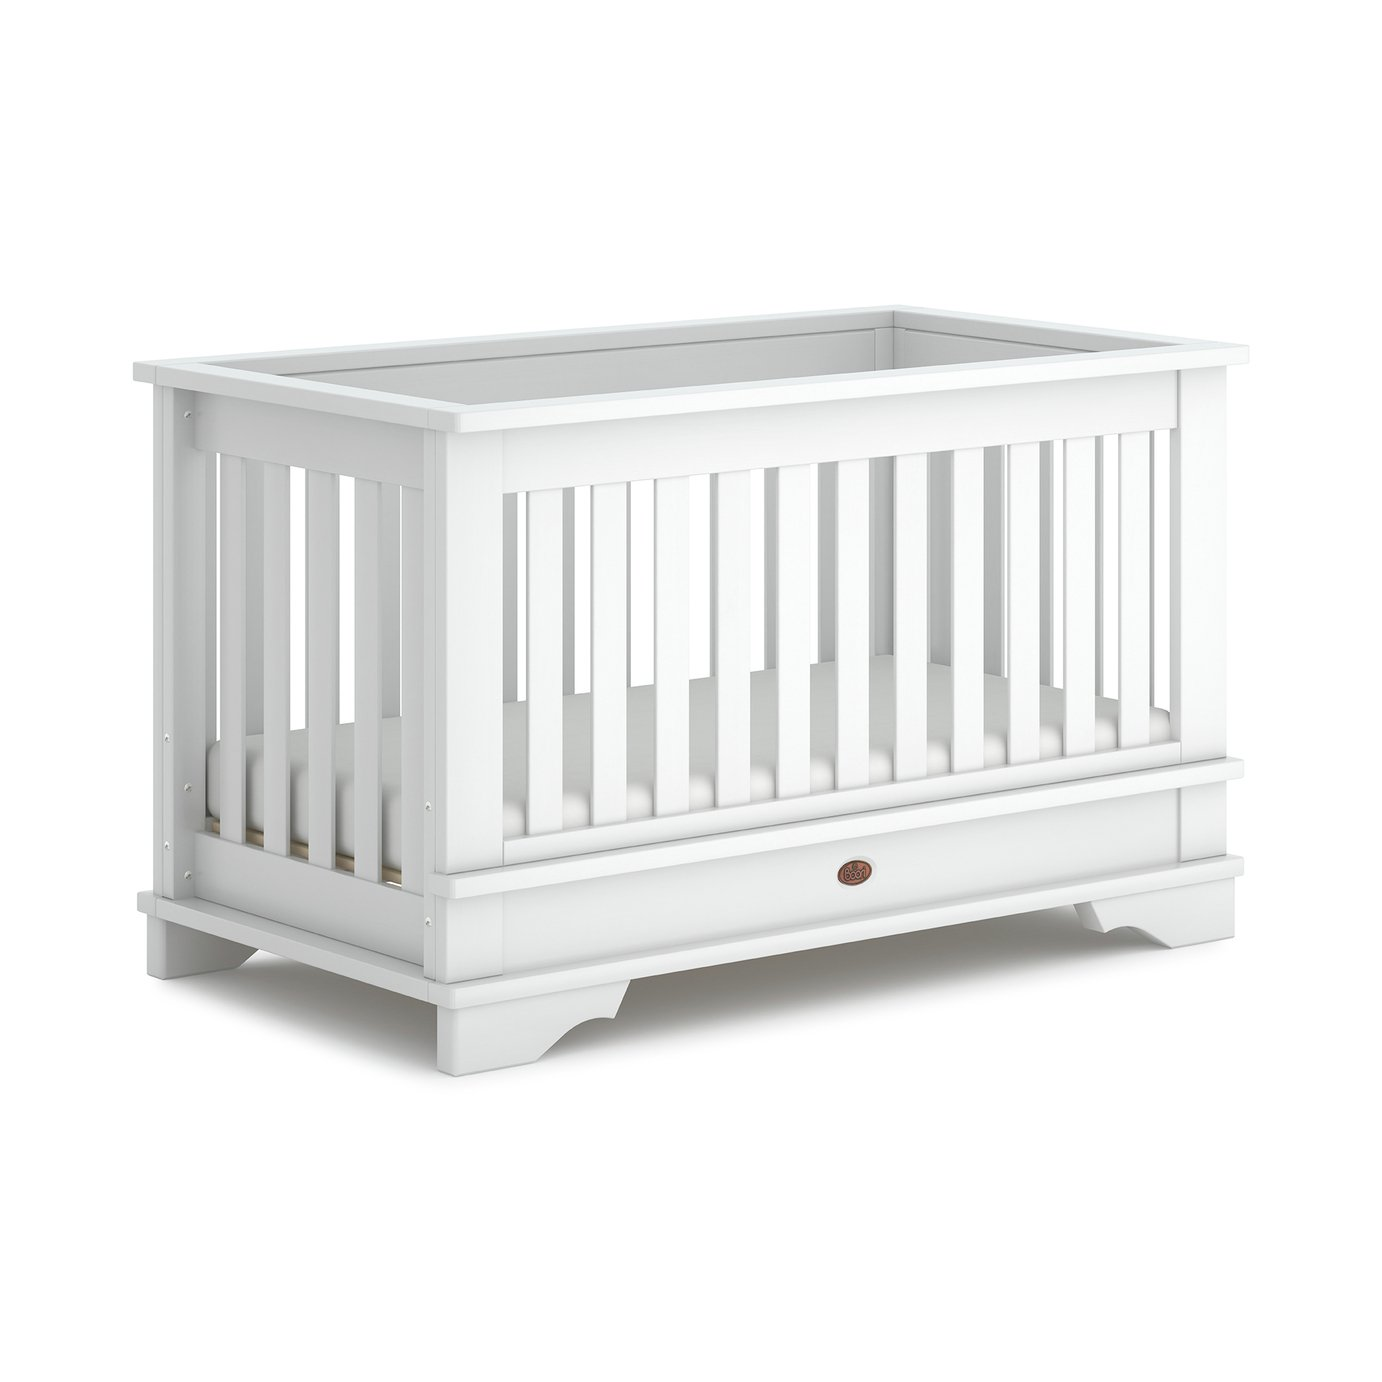 Boori Eton Convertible Plus Cot Bed - White